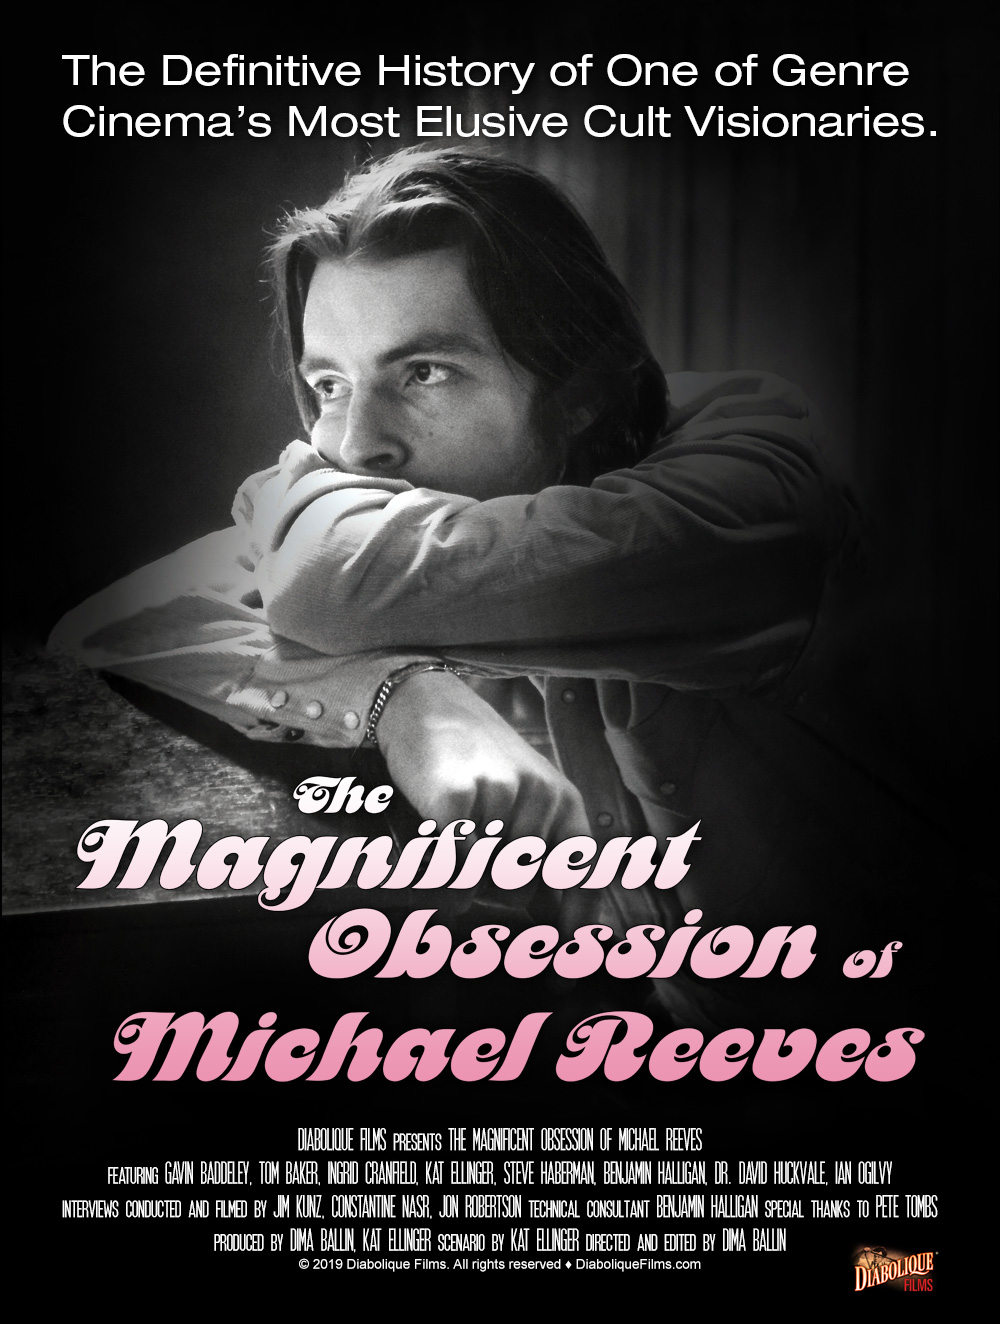 Click to enlarge image 01 The-Magnificent-Obsession-of-Michael-Reeves-Poster1.jpg